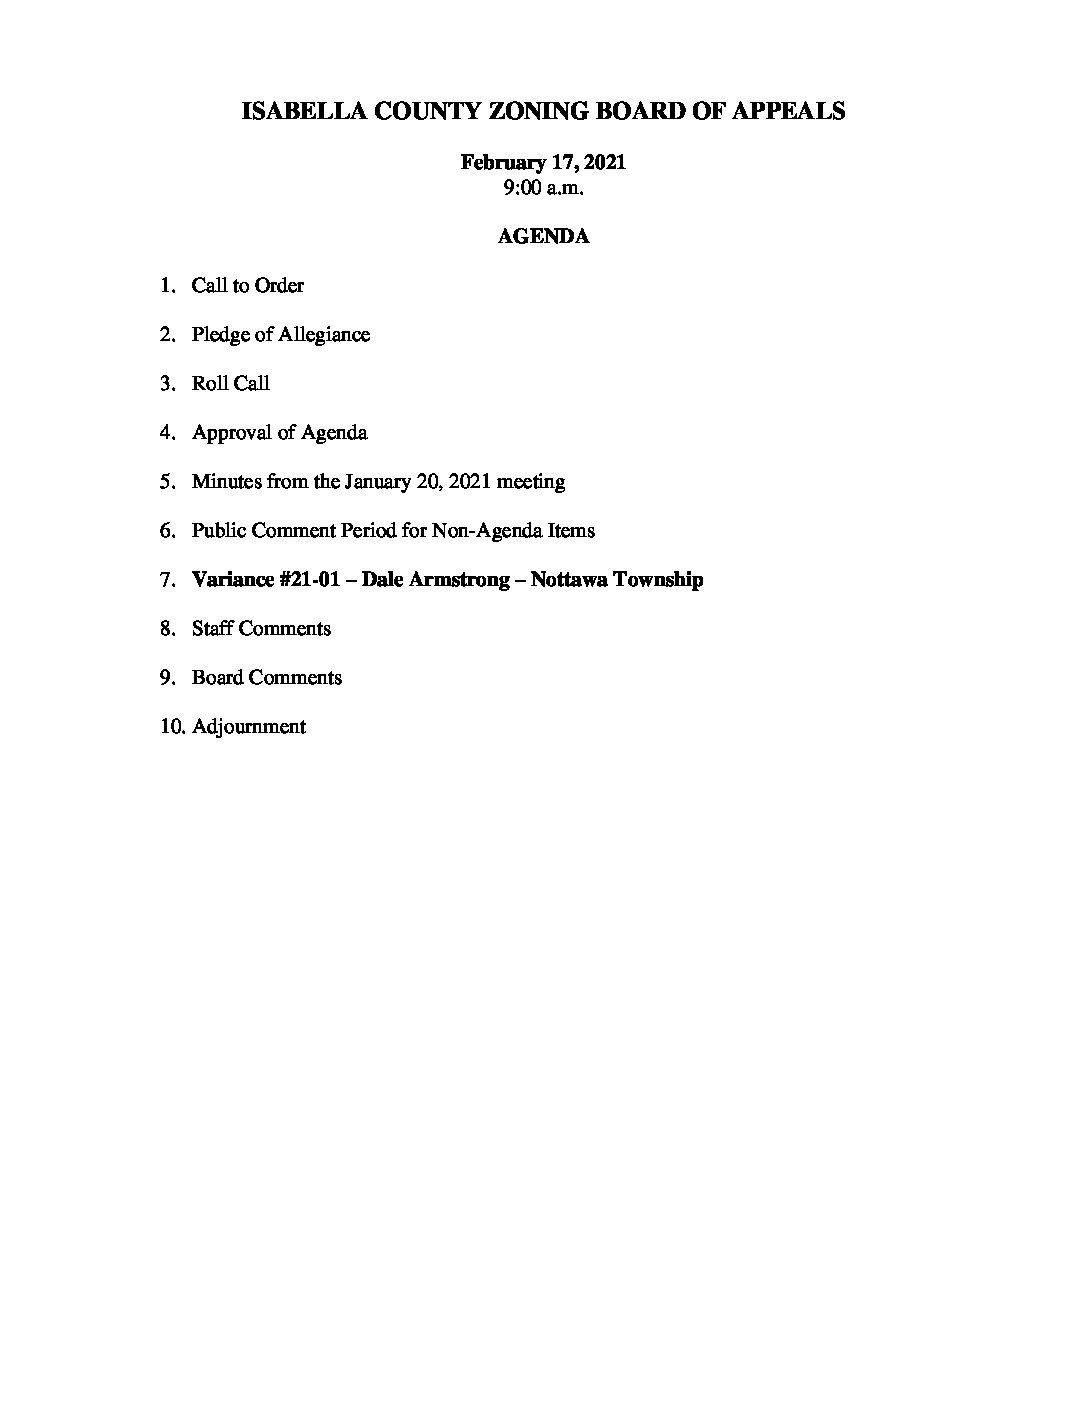 preview image of first page February 17, 2021 Agenda